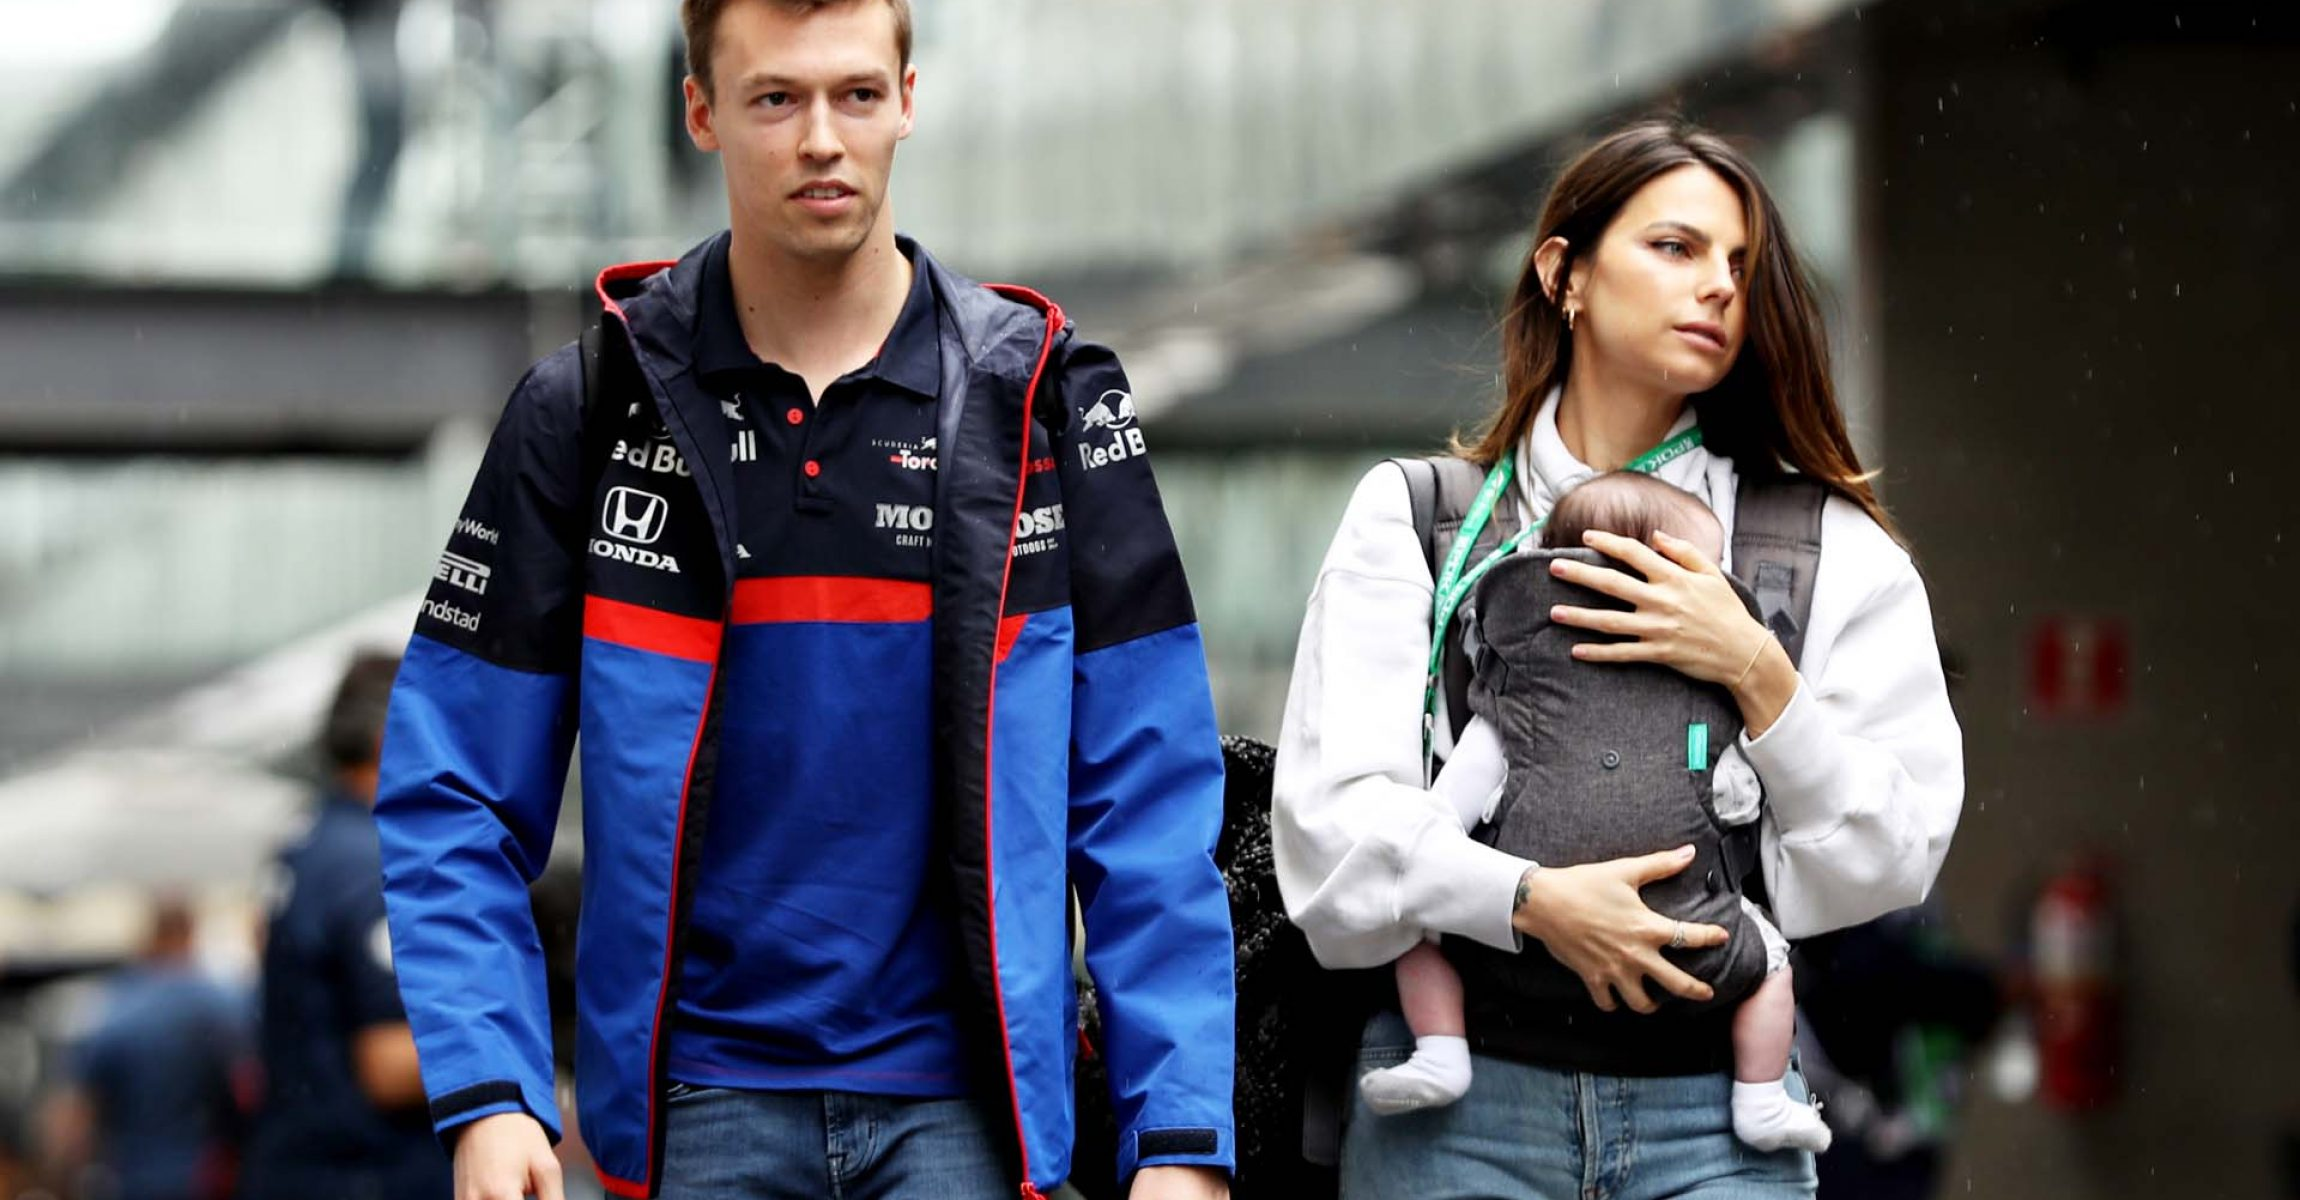 SAO PAULO, BRAZIL - NOVEMBER 14: Daniil Kvyat of Russia and Scuderia Toro Rosso and his girlfriend Kelly Piquet walk in the Paddock during previews ahead of the F1 Grand Prix of Brazil at Autodromo Jose Carlos Pace on November 14, 2019 in Sao Paulo, Brazil. (Photo by Robert Cianflone/Getty Images) // Getty Images / Red Bull Content Pool // AP-226CCCNXD2111 // Usage for editorial use only //